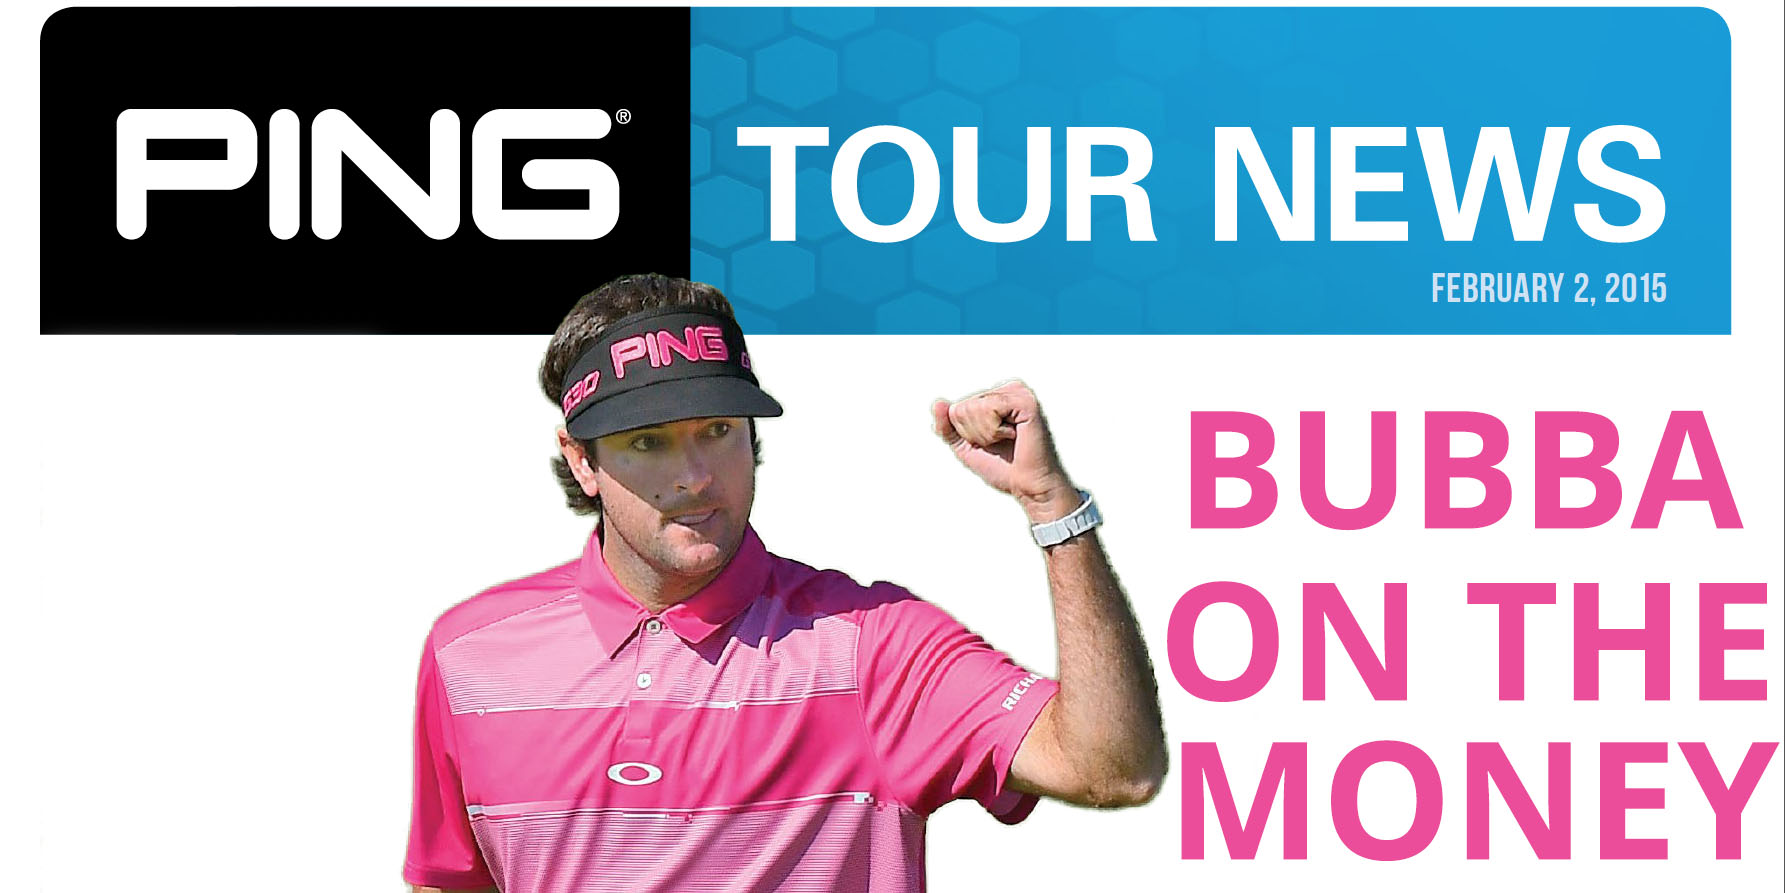 PING Tour News: Week of February 2, 2015